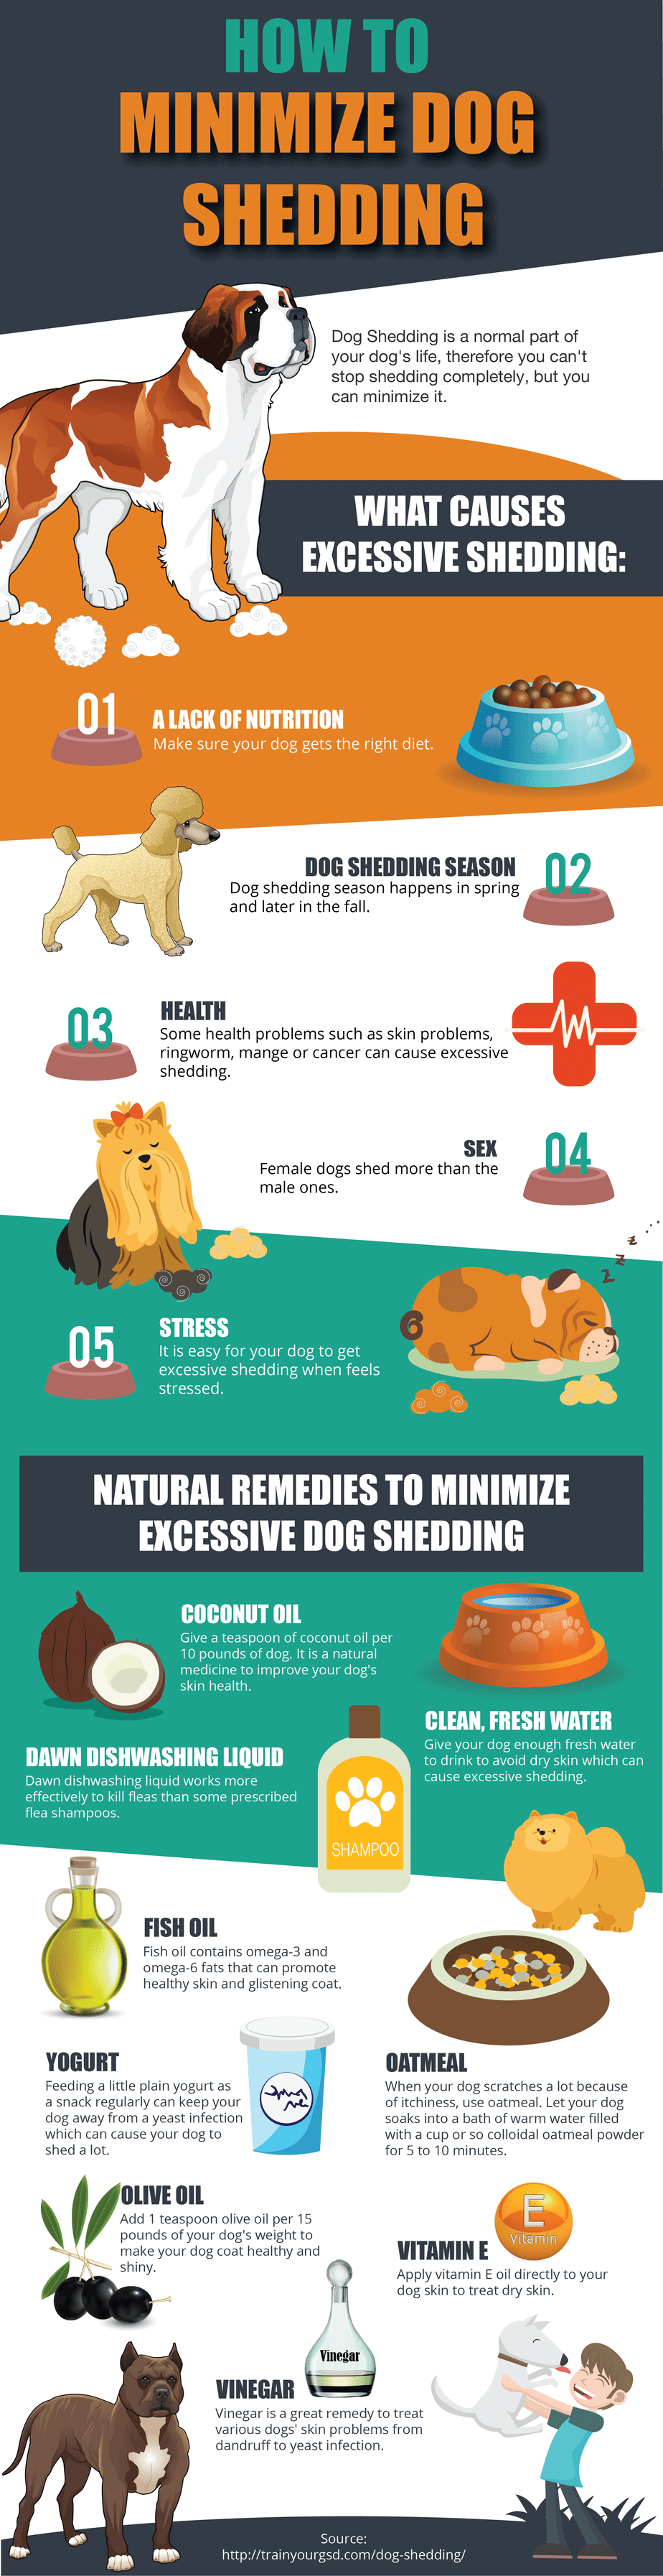 graphic details how to minimize dog shedding